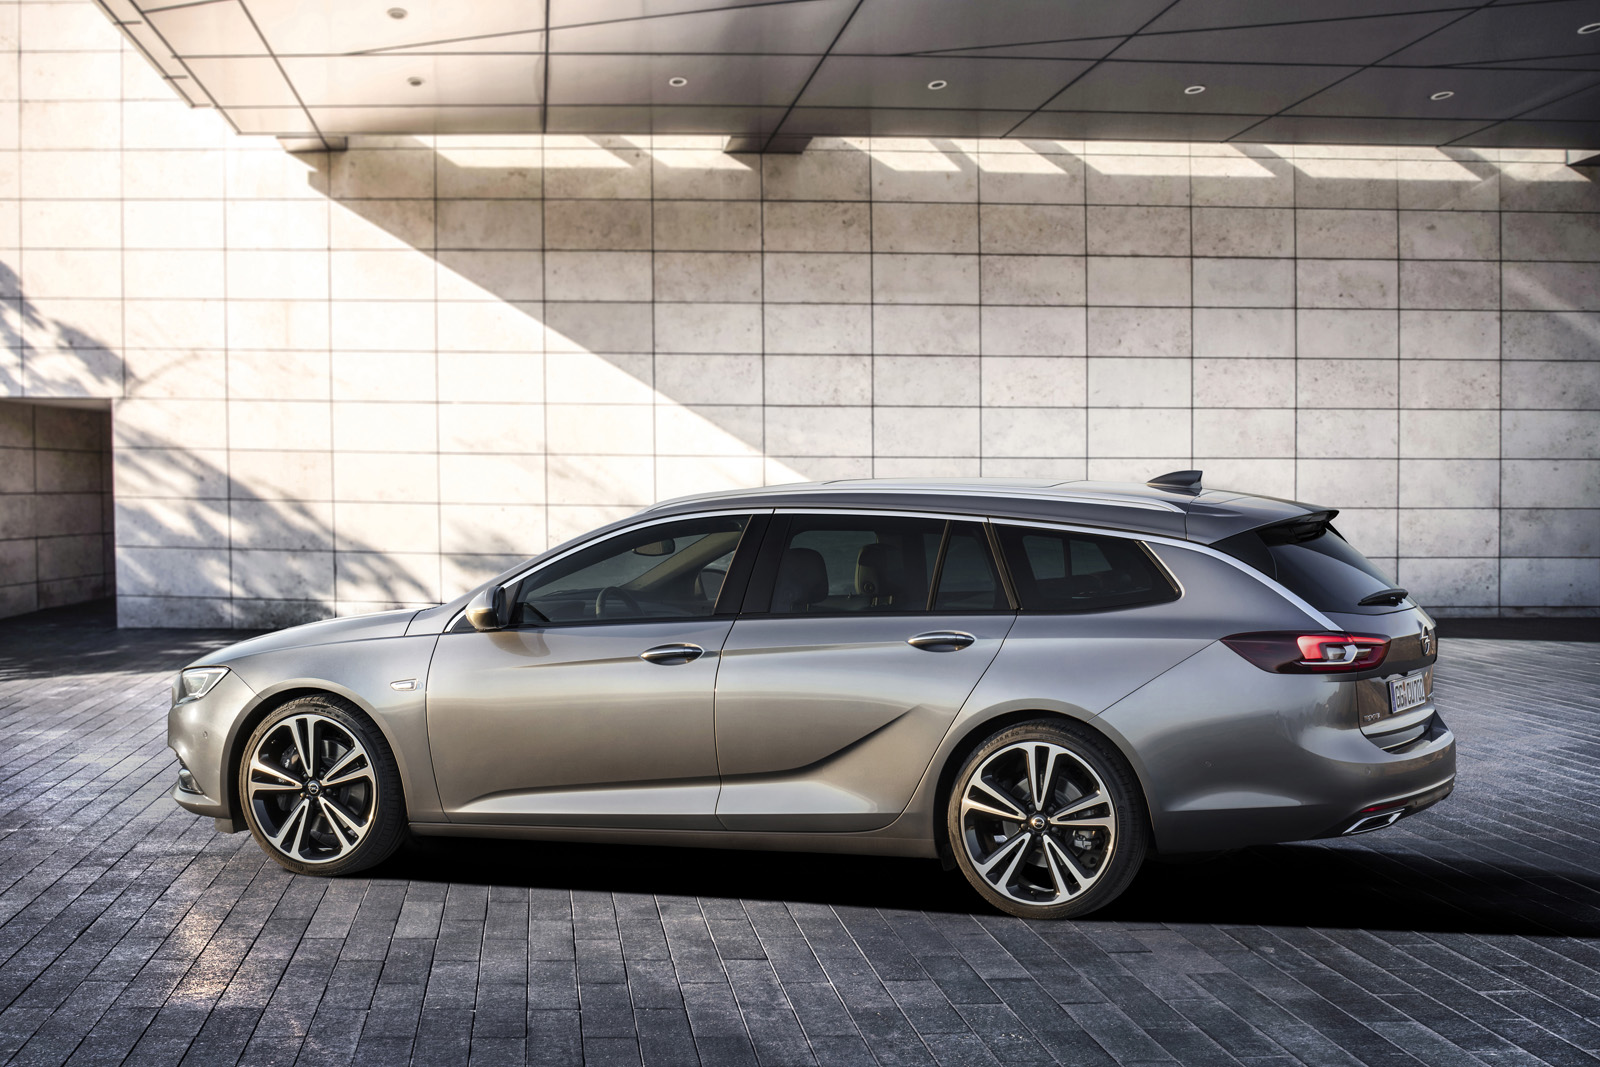 2018 buick regal debuting at april 39 s new york auto show carscoops. Black Bedroom Furniture Sets. Home Design Ideas